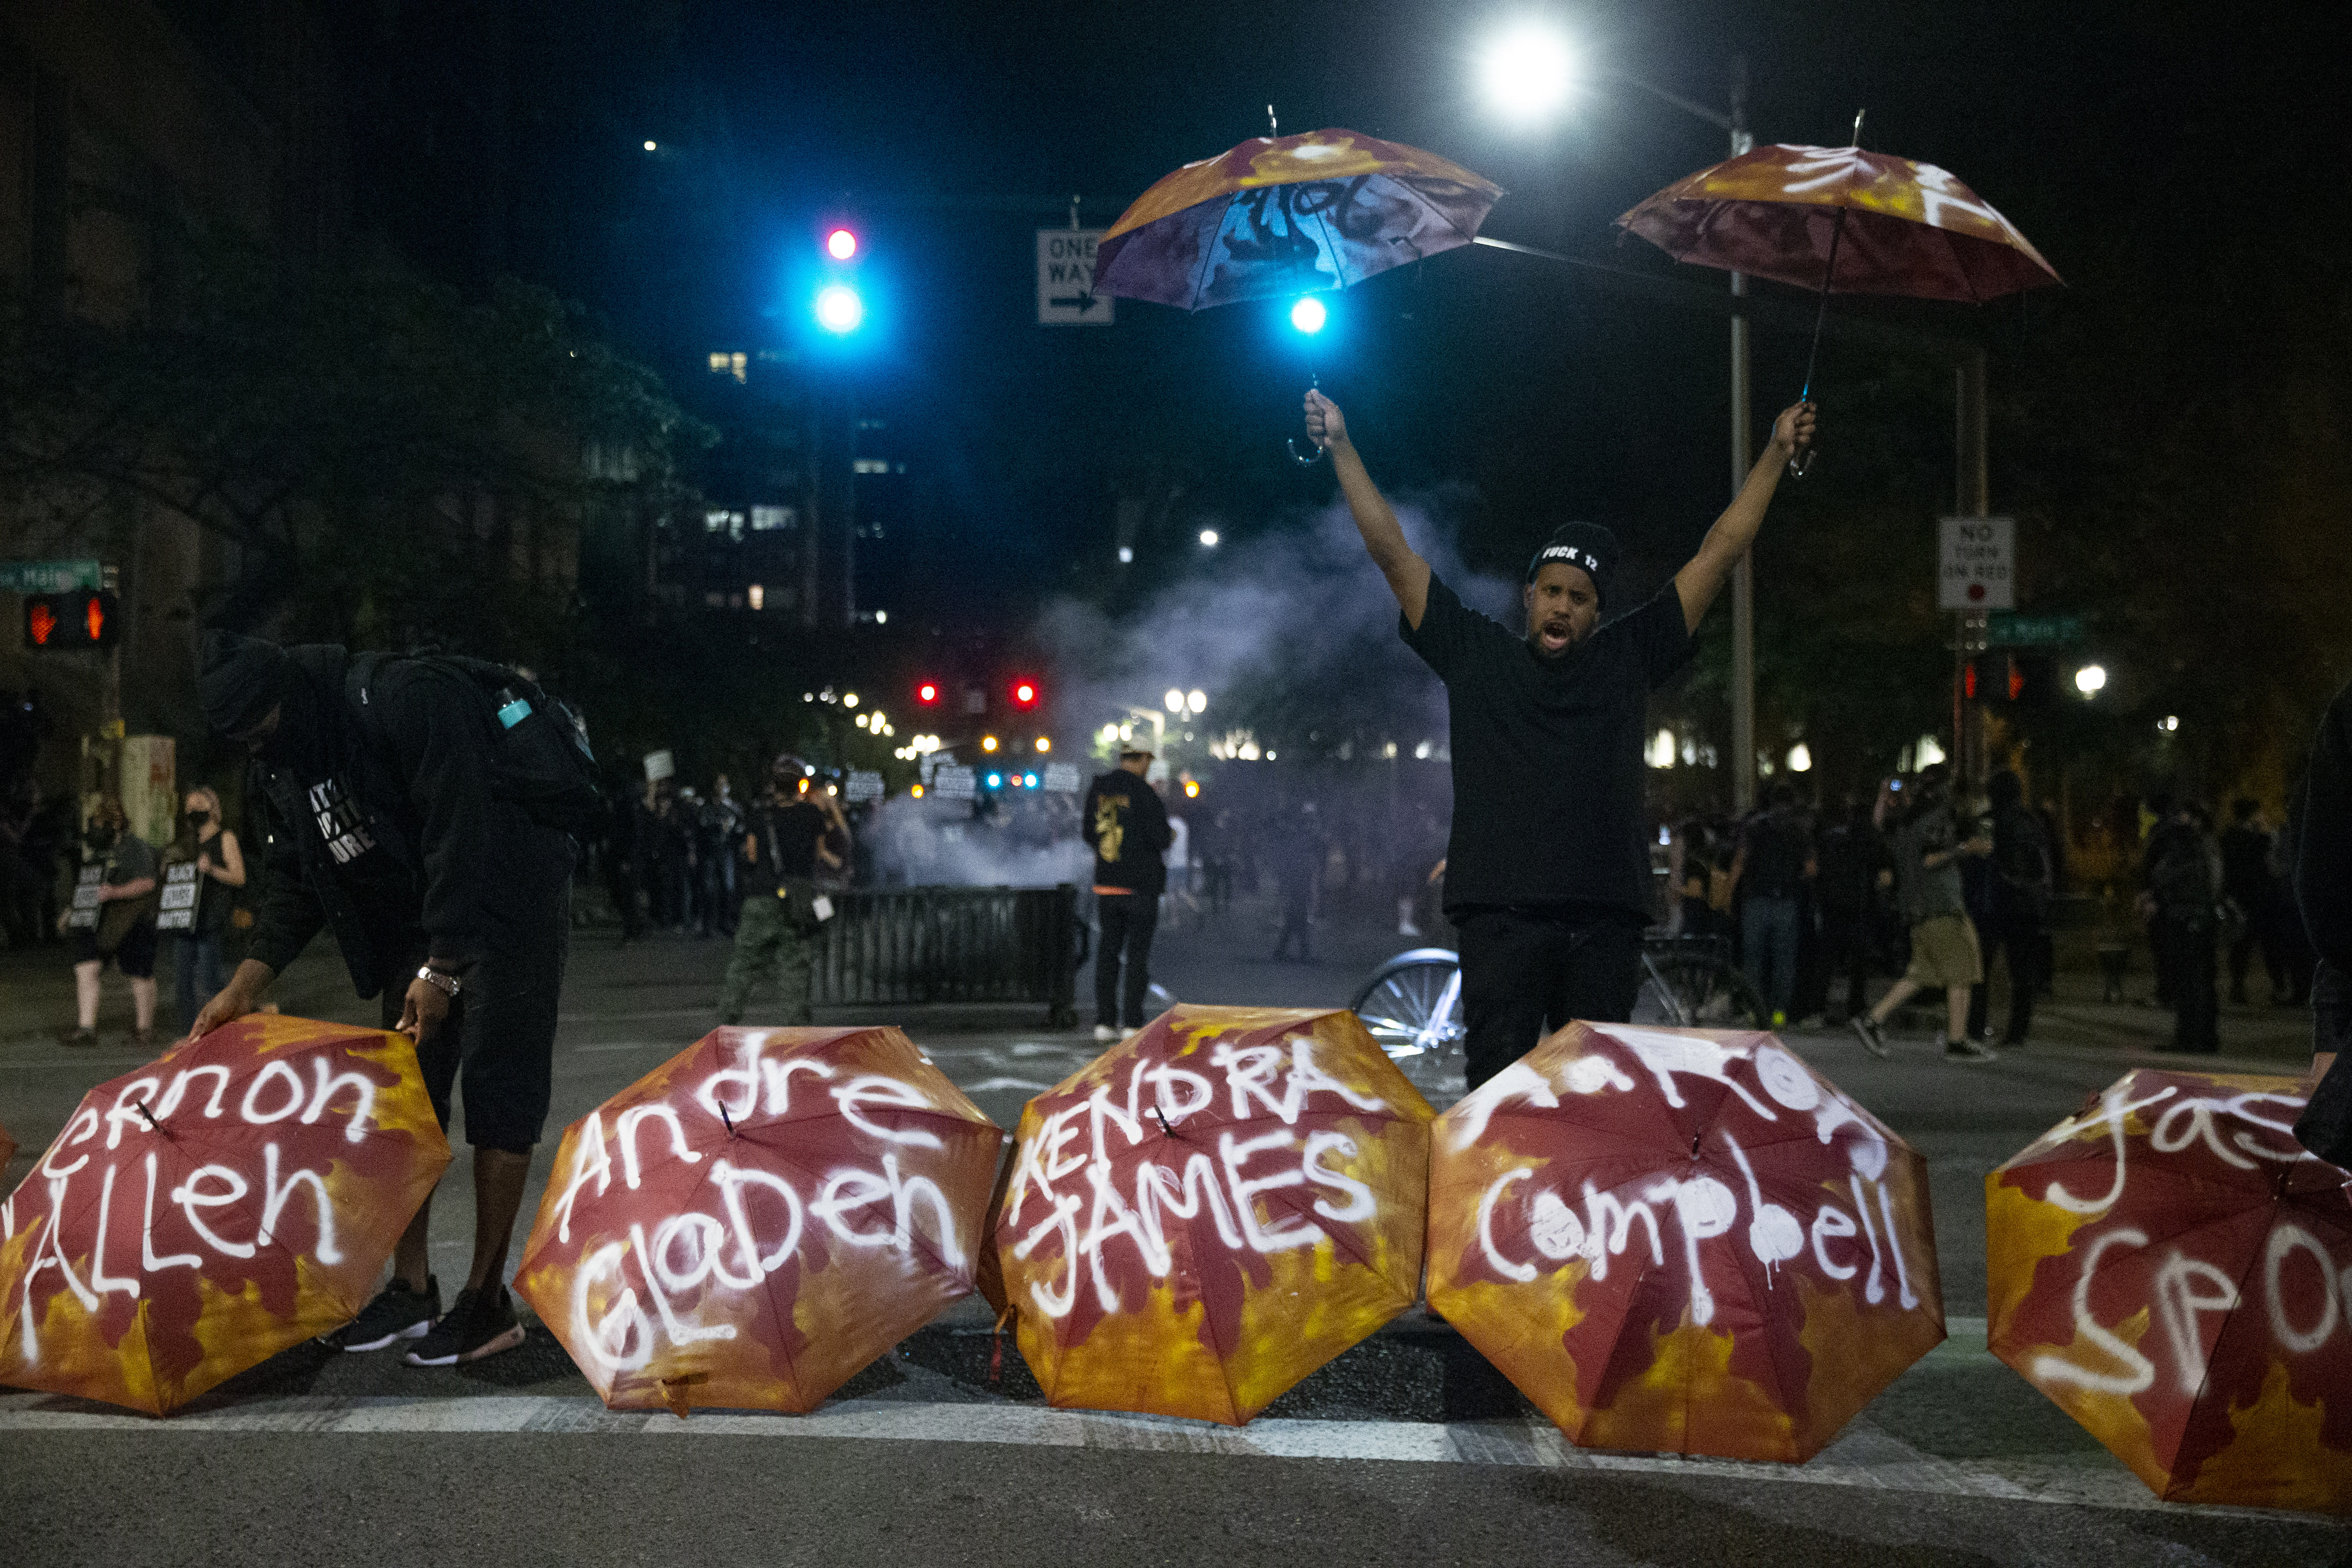 Umbrellas bearing the names of people killed by police were displayed at SW 3rd and Main as Portland protesters gather downtown on Friday, July 10, 2020. (Dave Killen/The Oregonian via AP)